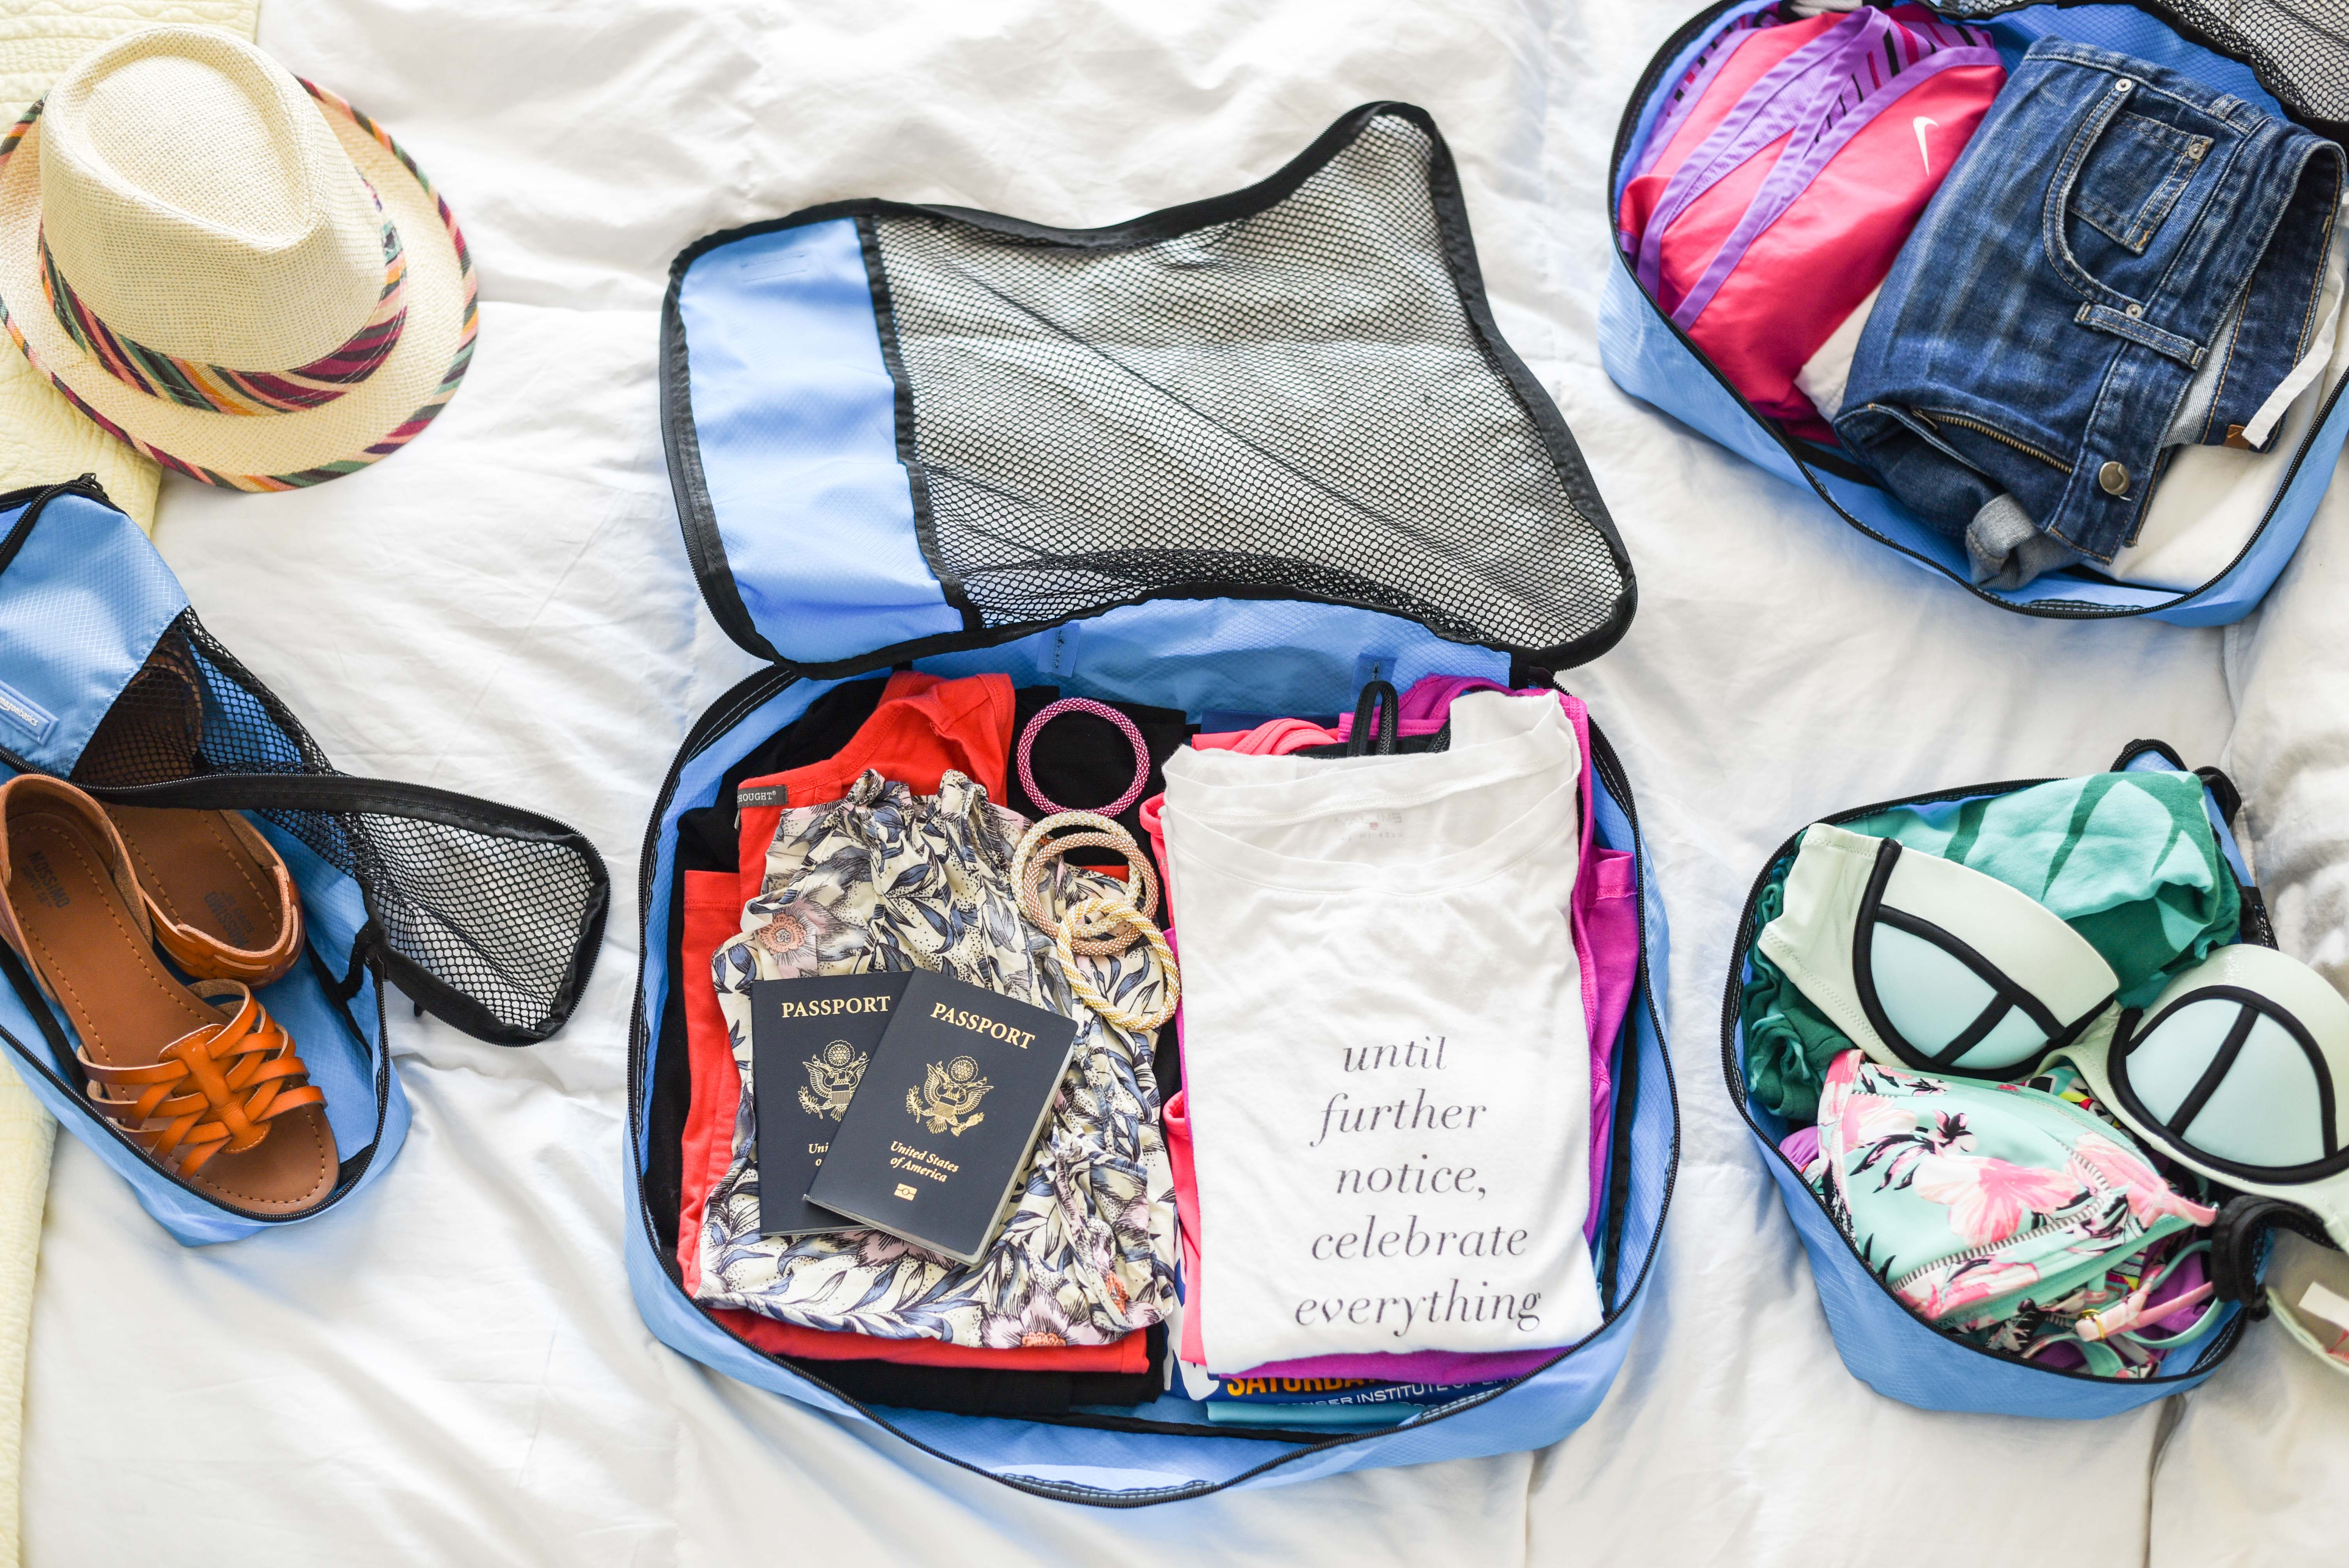 Packing cubes are my new favorite travel accessory!